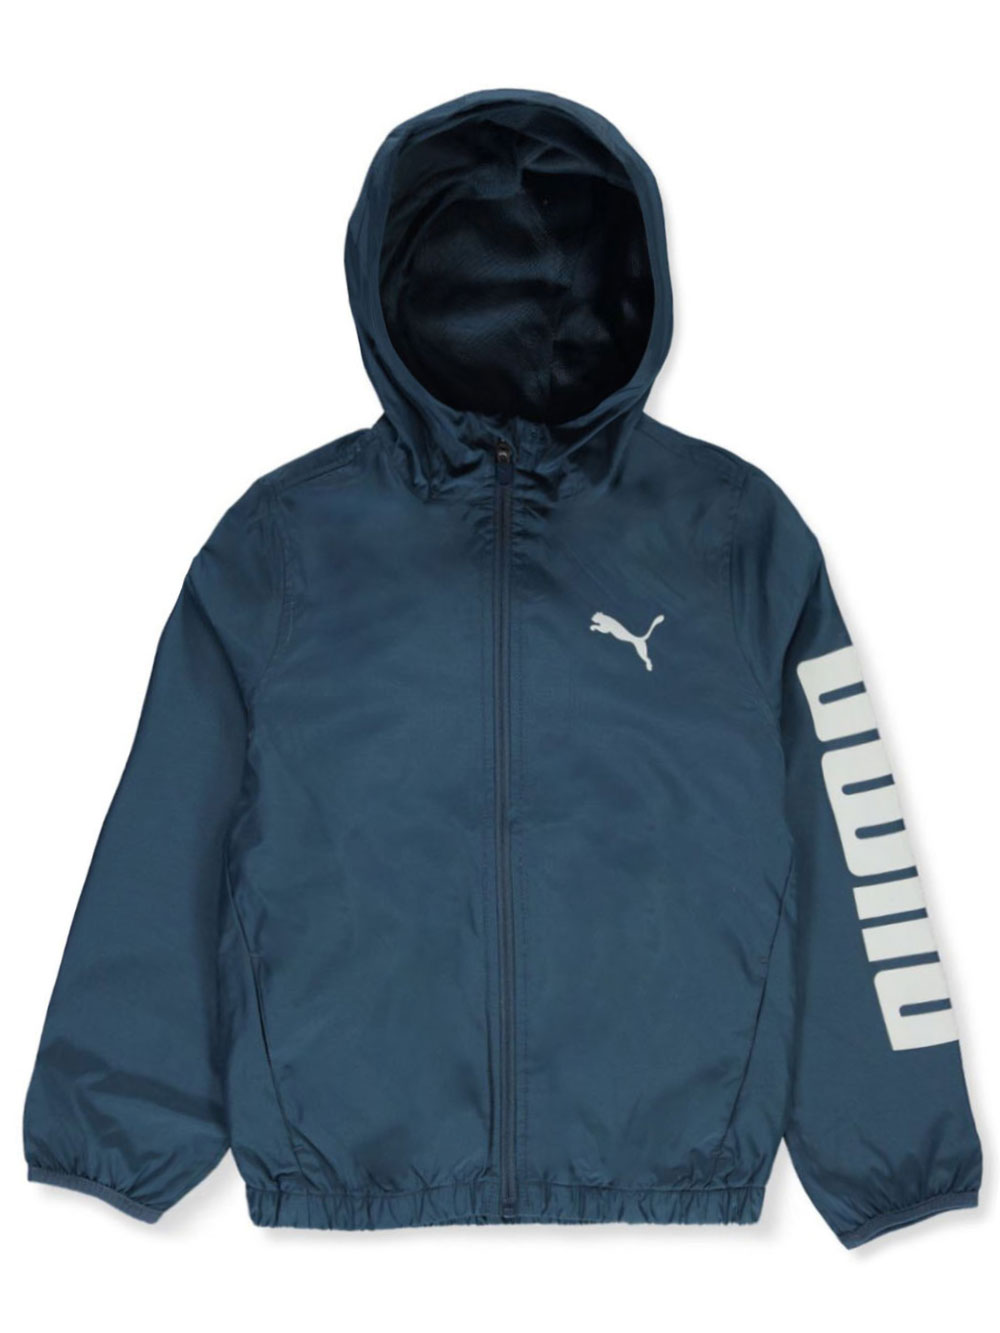 Boys Puma Black Jackets